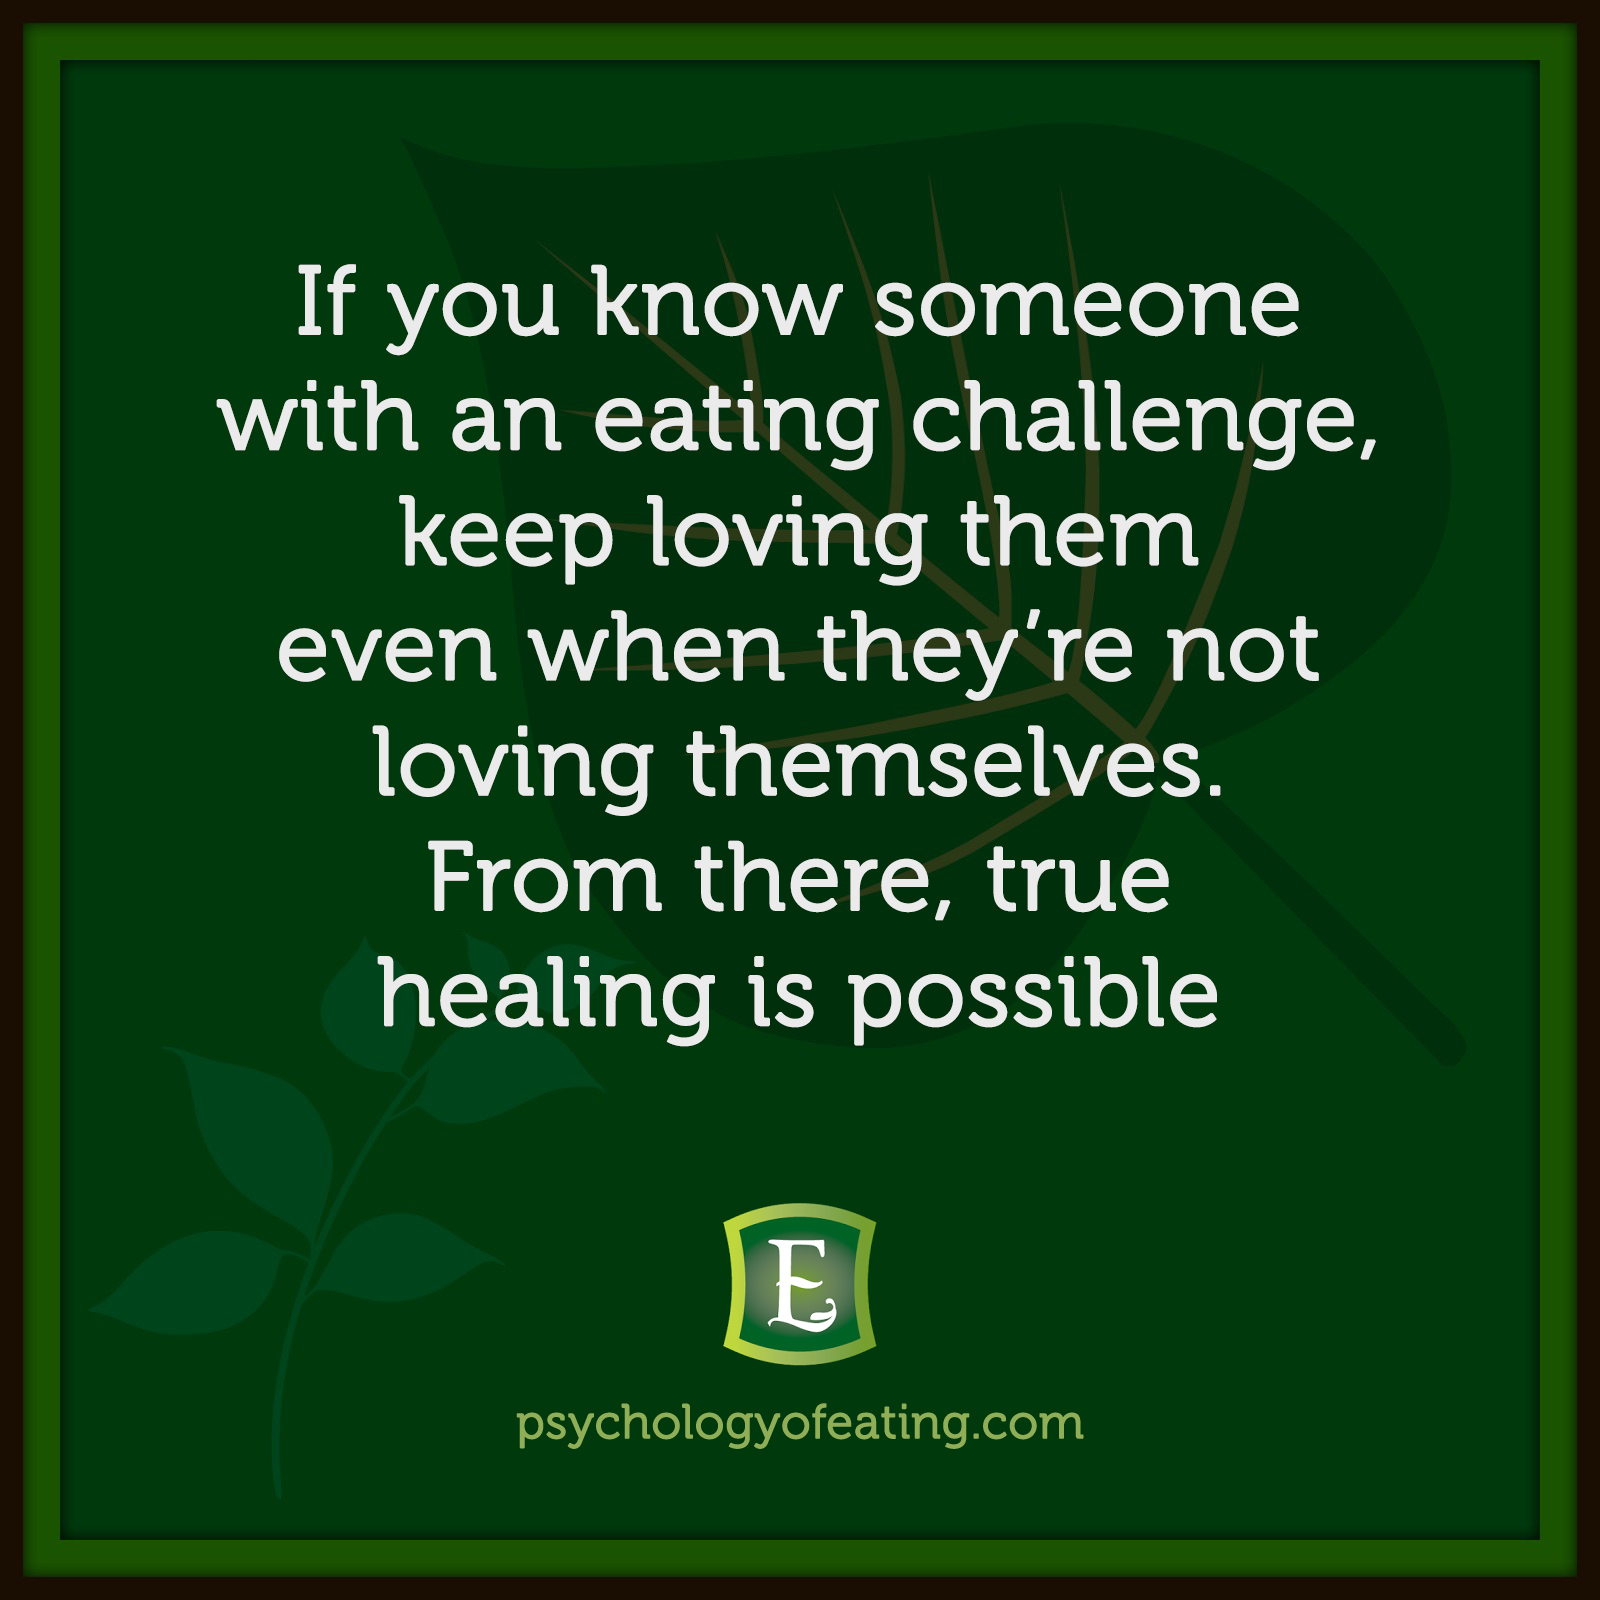 If you know someone with an eating challenge, keep loving them even when they're not loving themselves. From there, true healing is possible #health #nutrition #eatingpsychology #IPE